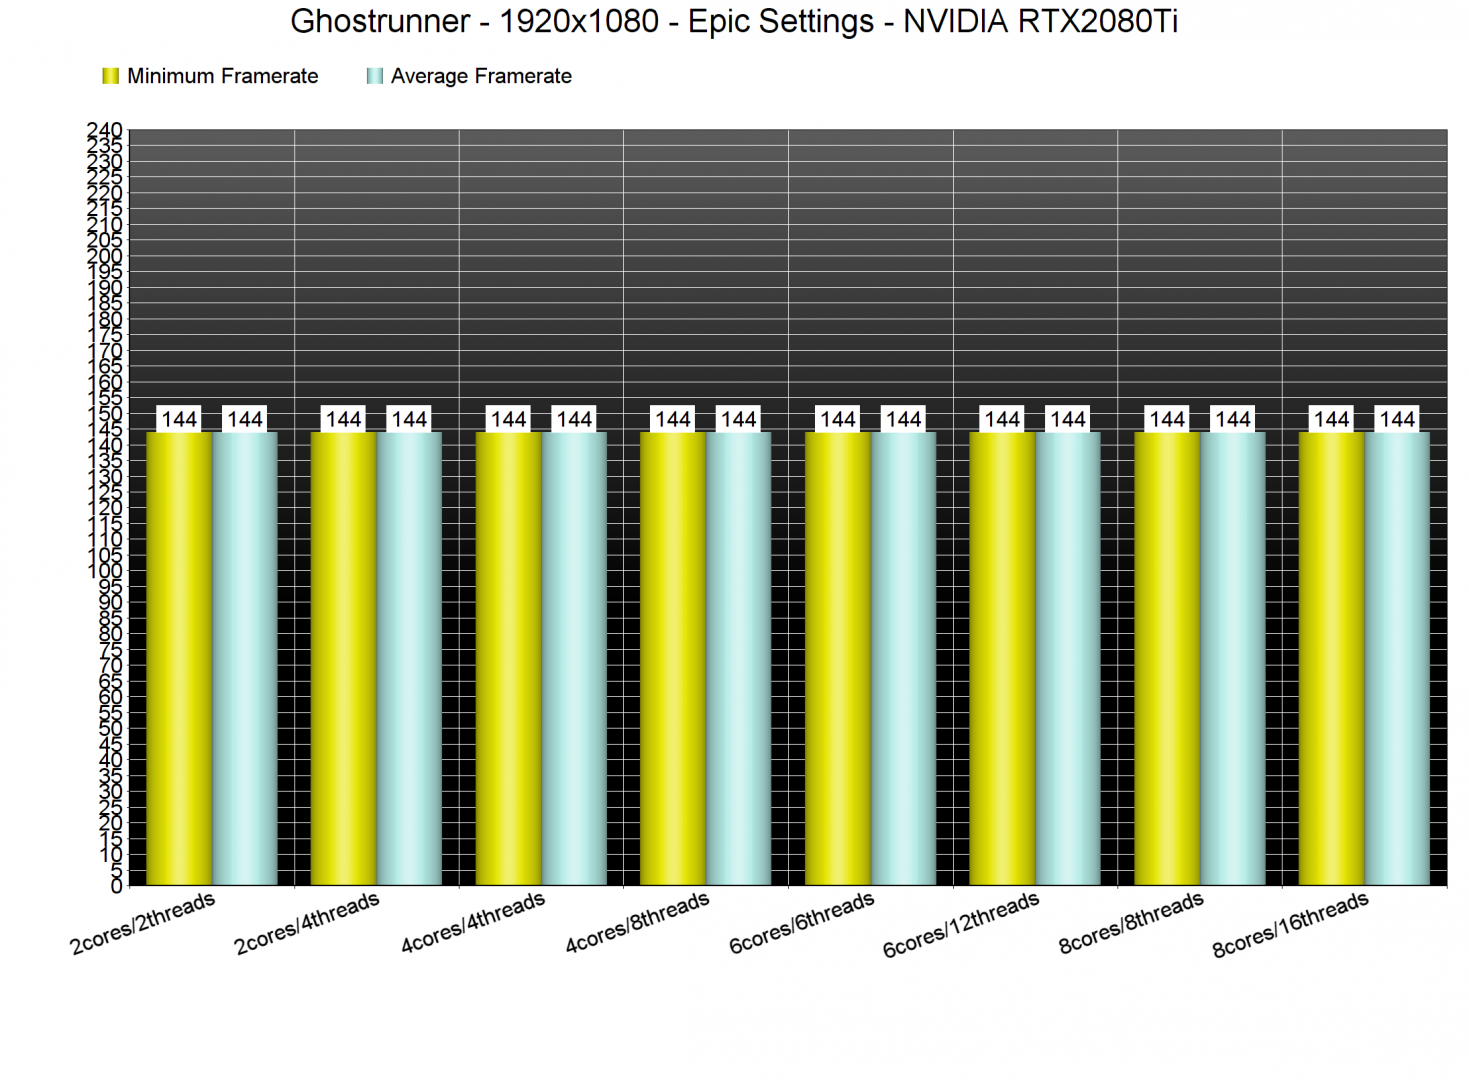 Ghostrunner CPU benchmarks-1